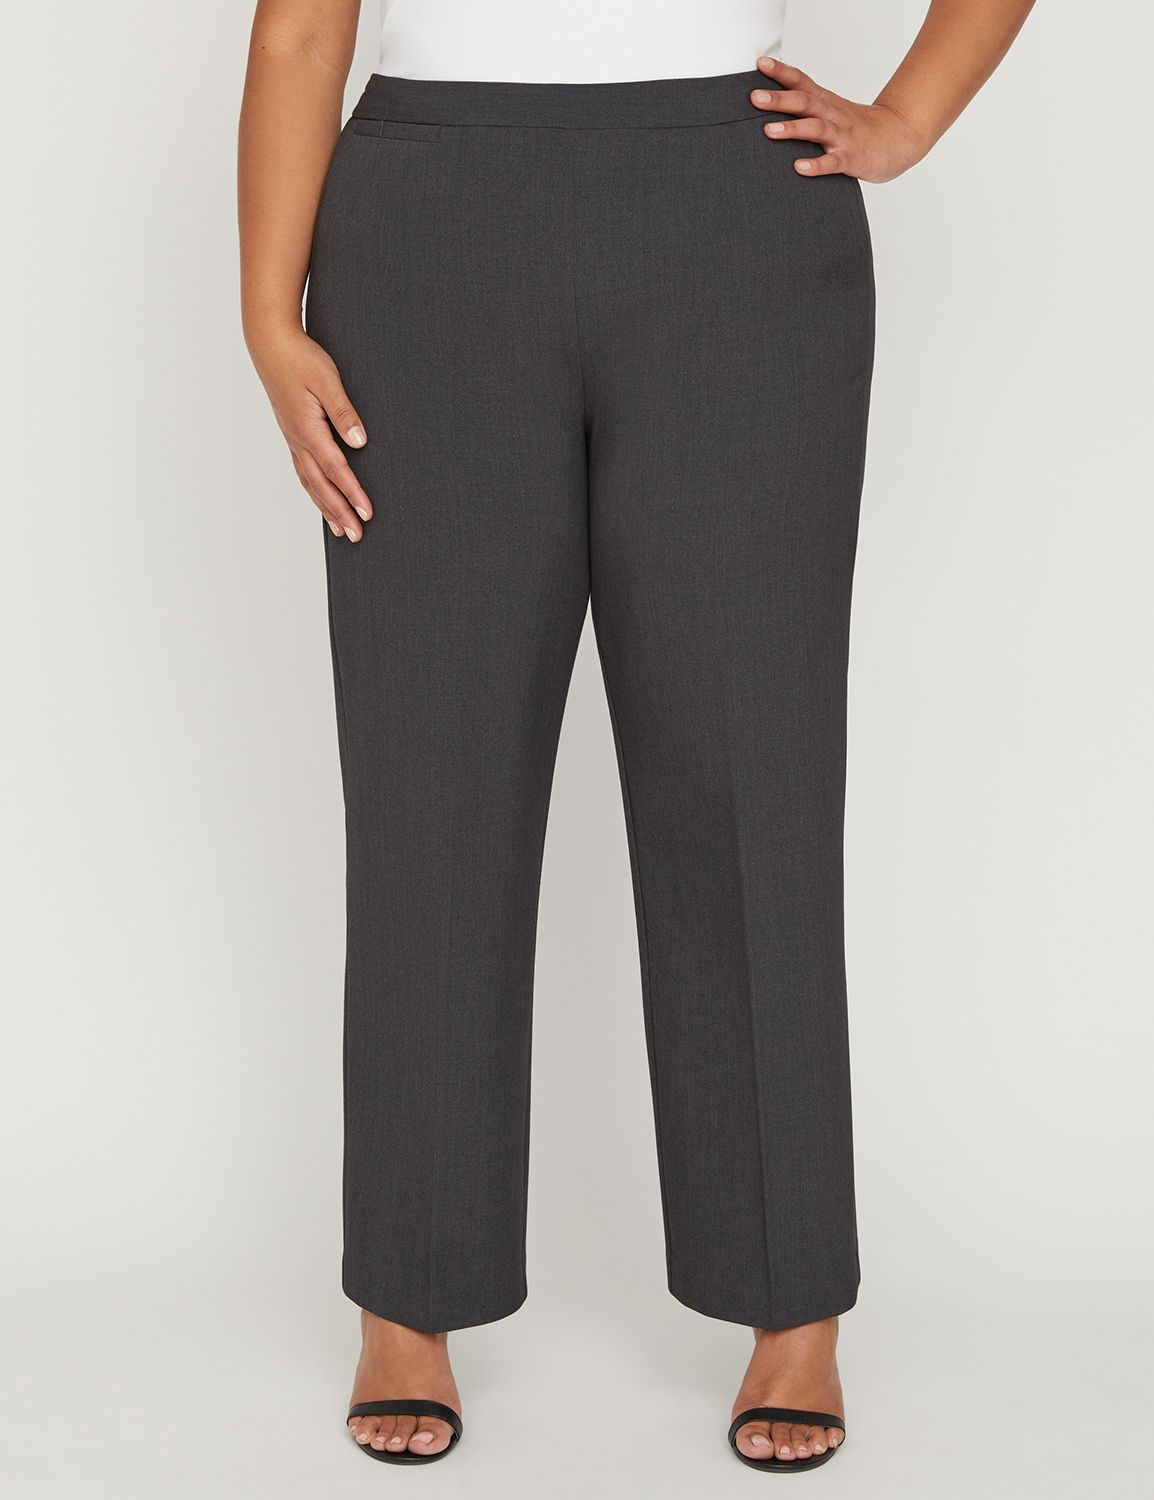 Heathered Refined Pant Heathered Refined Fit Pant MP-300044114